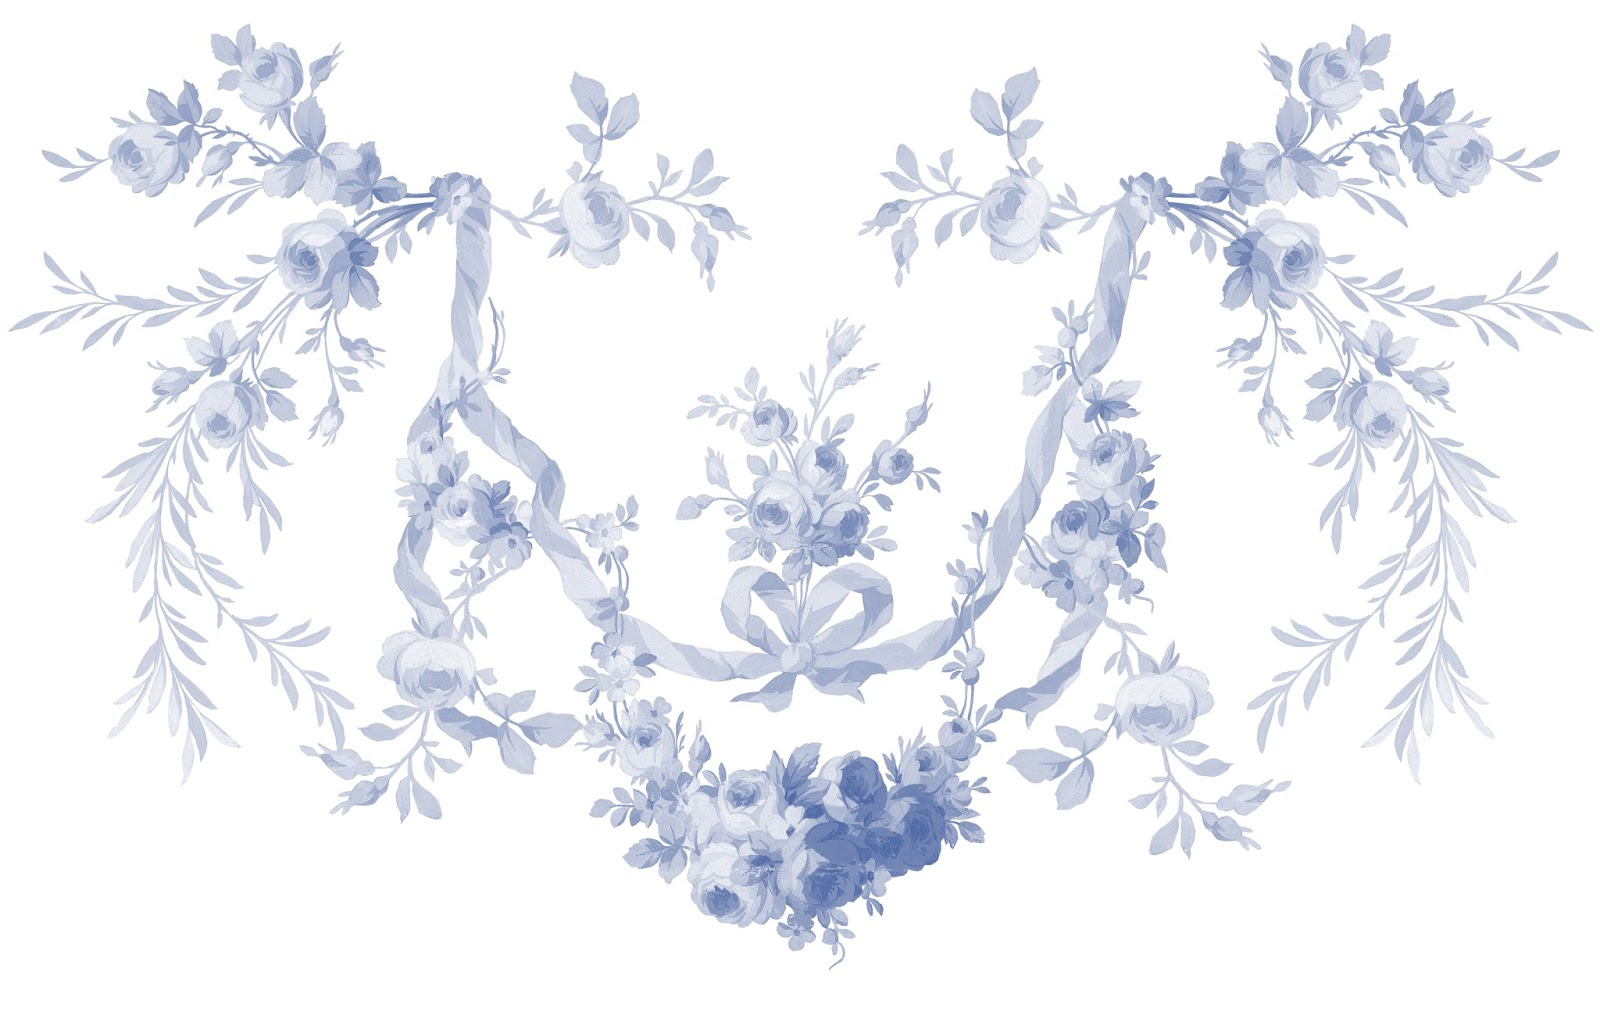 Gentil LilyOake My Newest Blue White Fabric And Wallpaper Designs 1600x1015